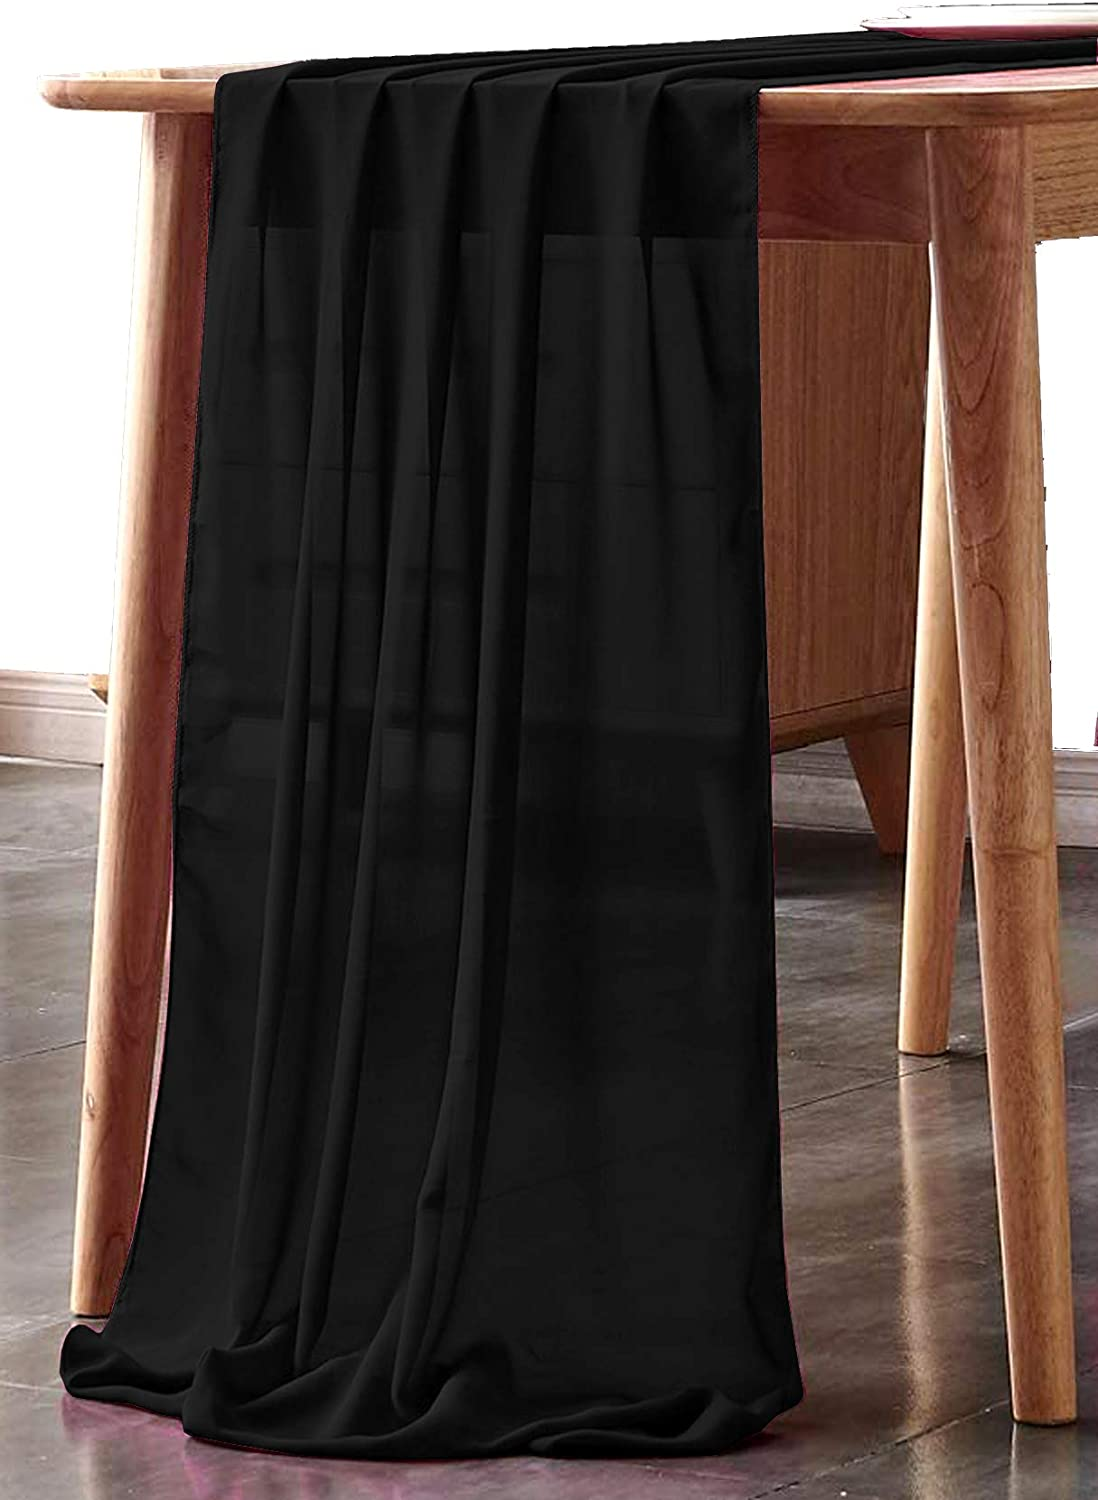 mds Pack of 12 Wedding 27 x 170 Special price Tampa Mall Chiffon inch Table We Runner for